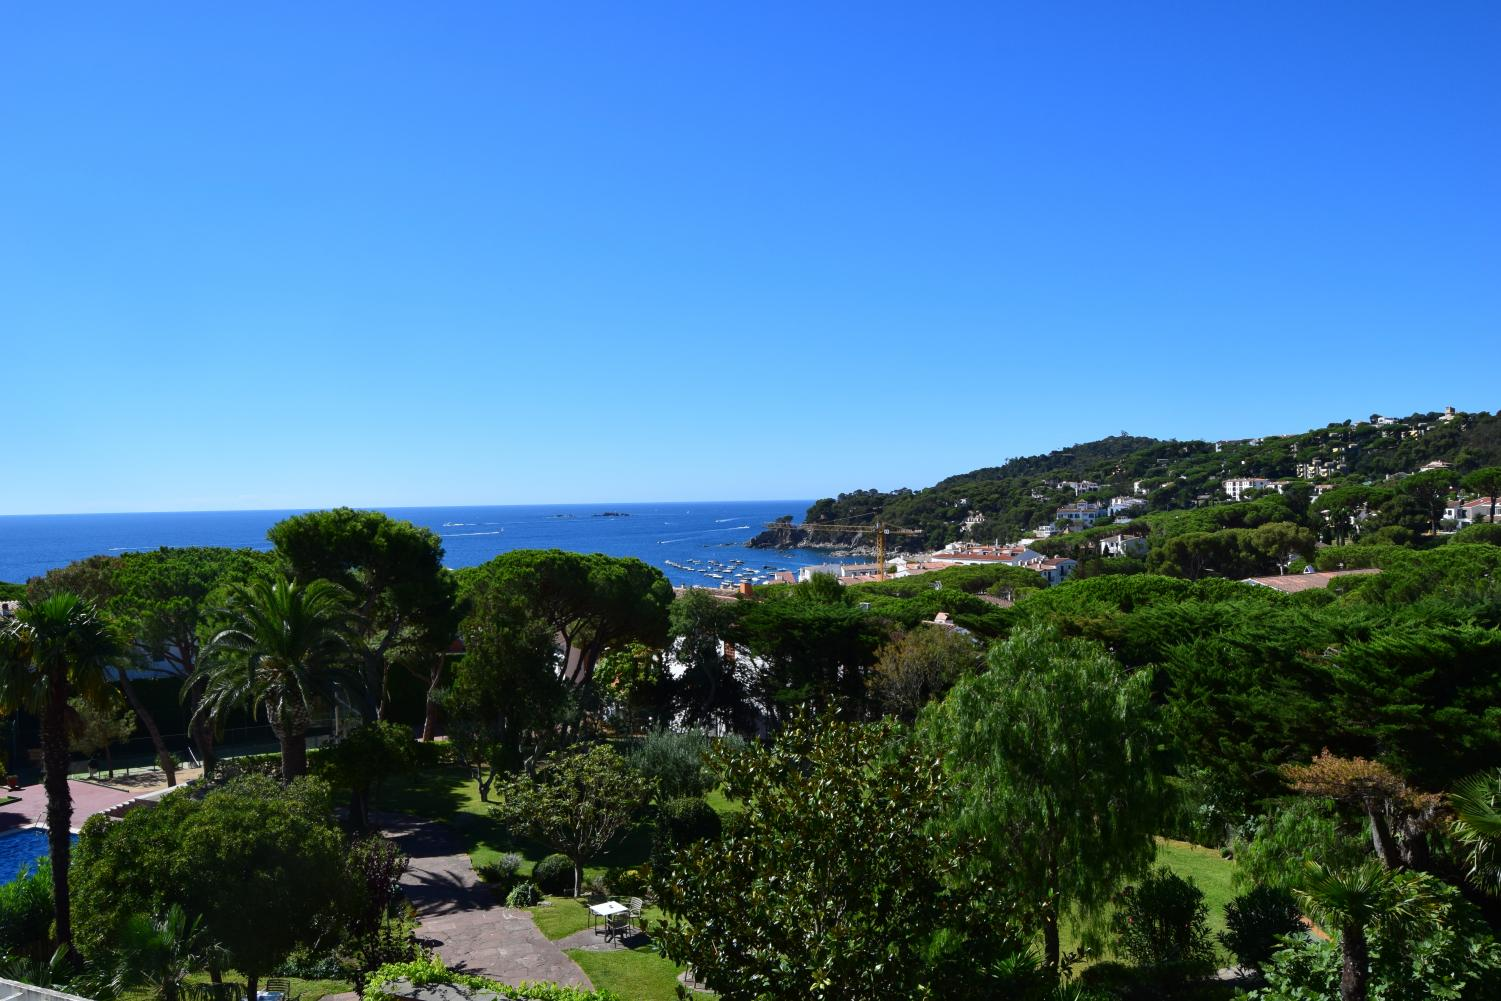 Palafrugell (pictured) is a city in Catalonia located on the coast of Spain.